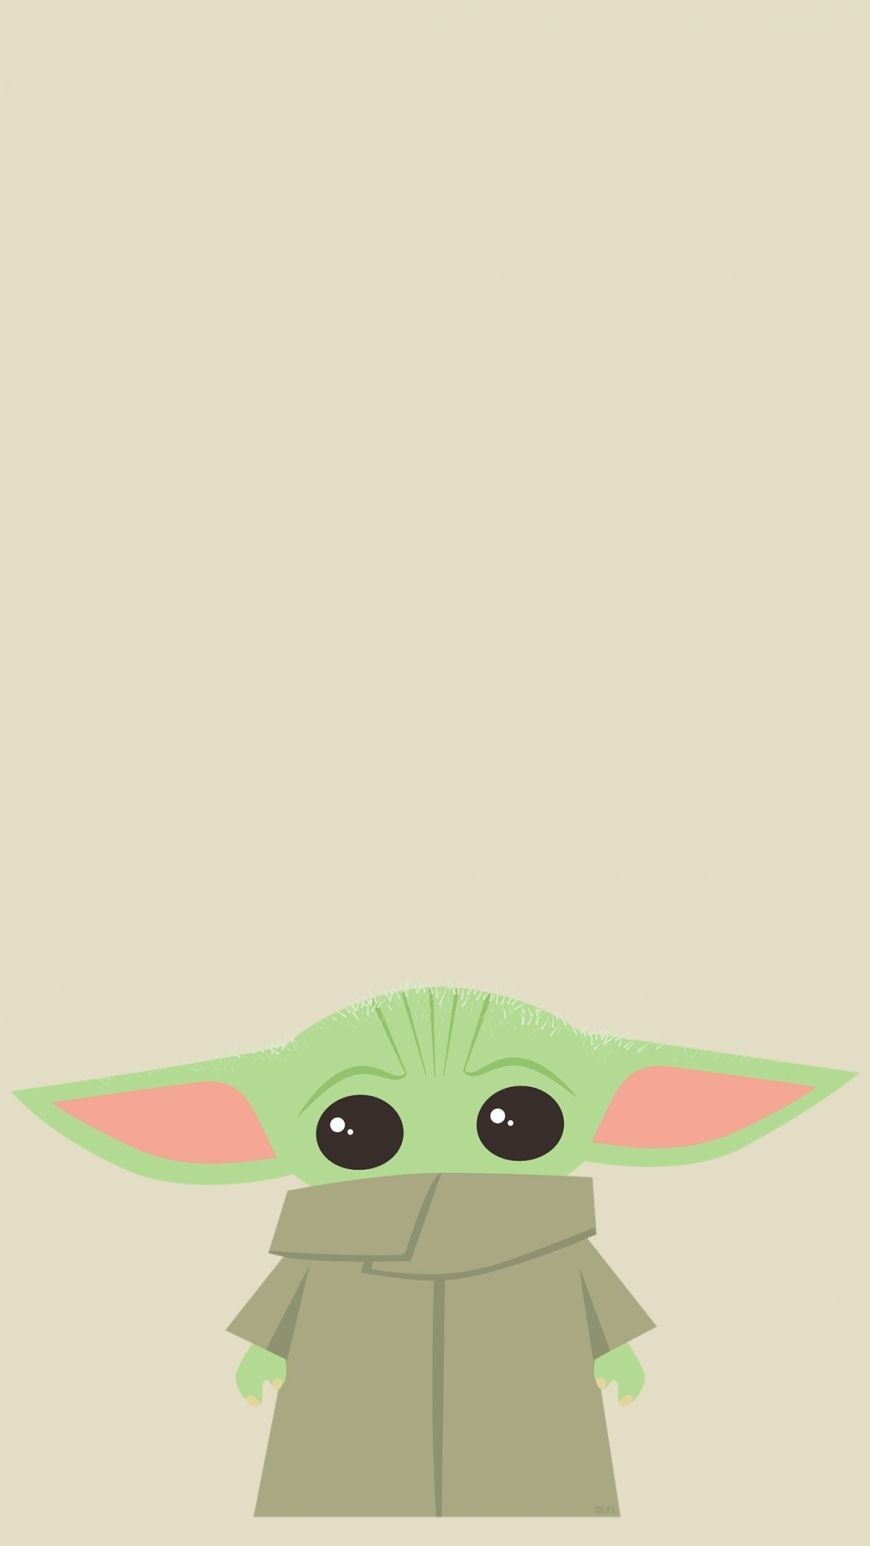 Fond D Ecran Mignon Bebe Yoda Yoda Wallpaper Cute Patterns Wallpaper Cute Cartoon Wallpapers